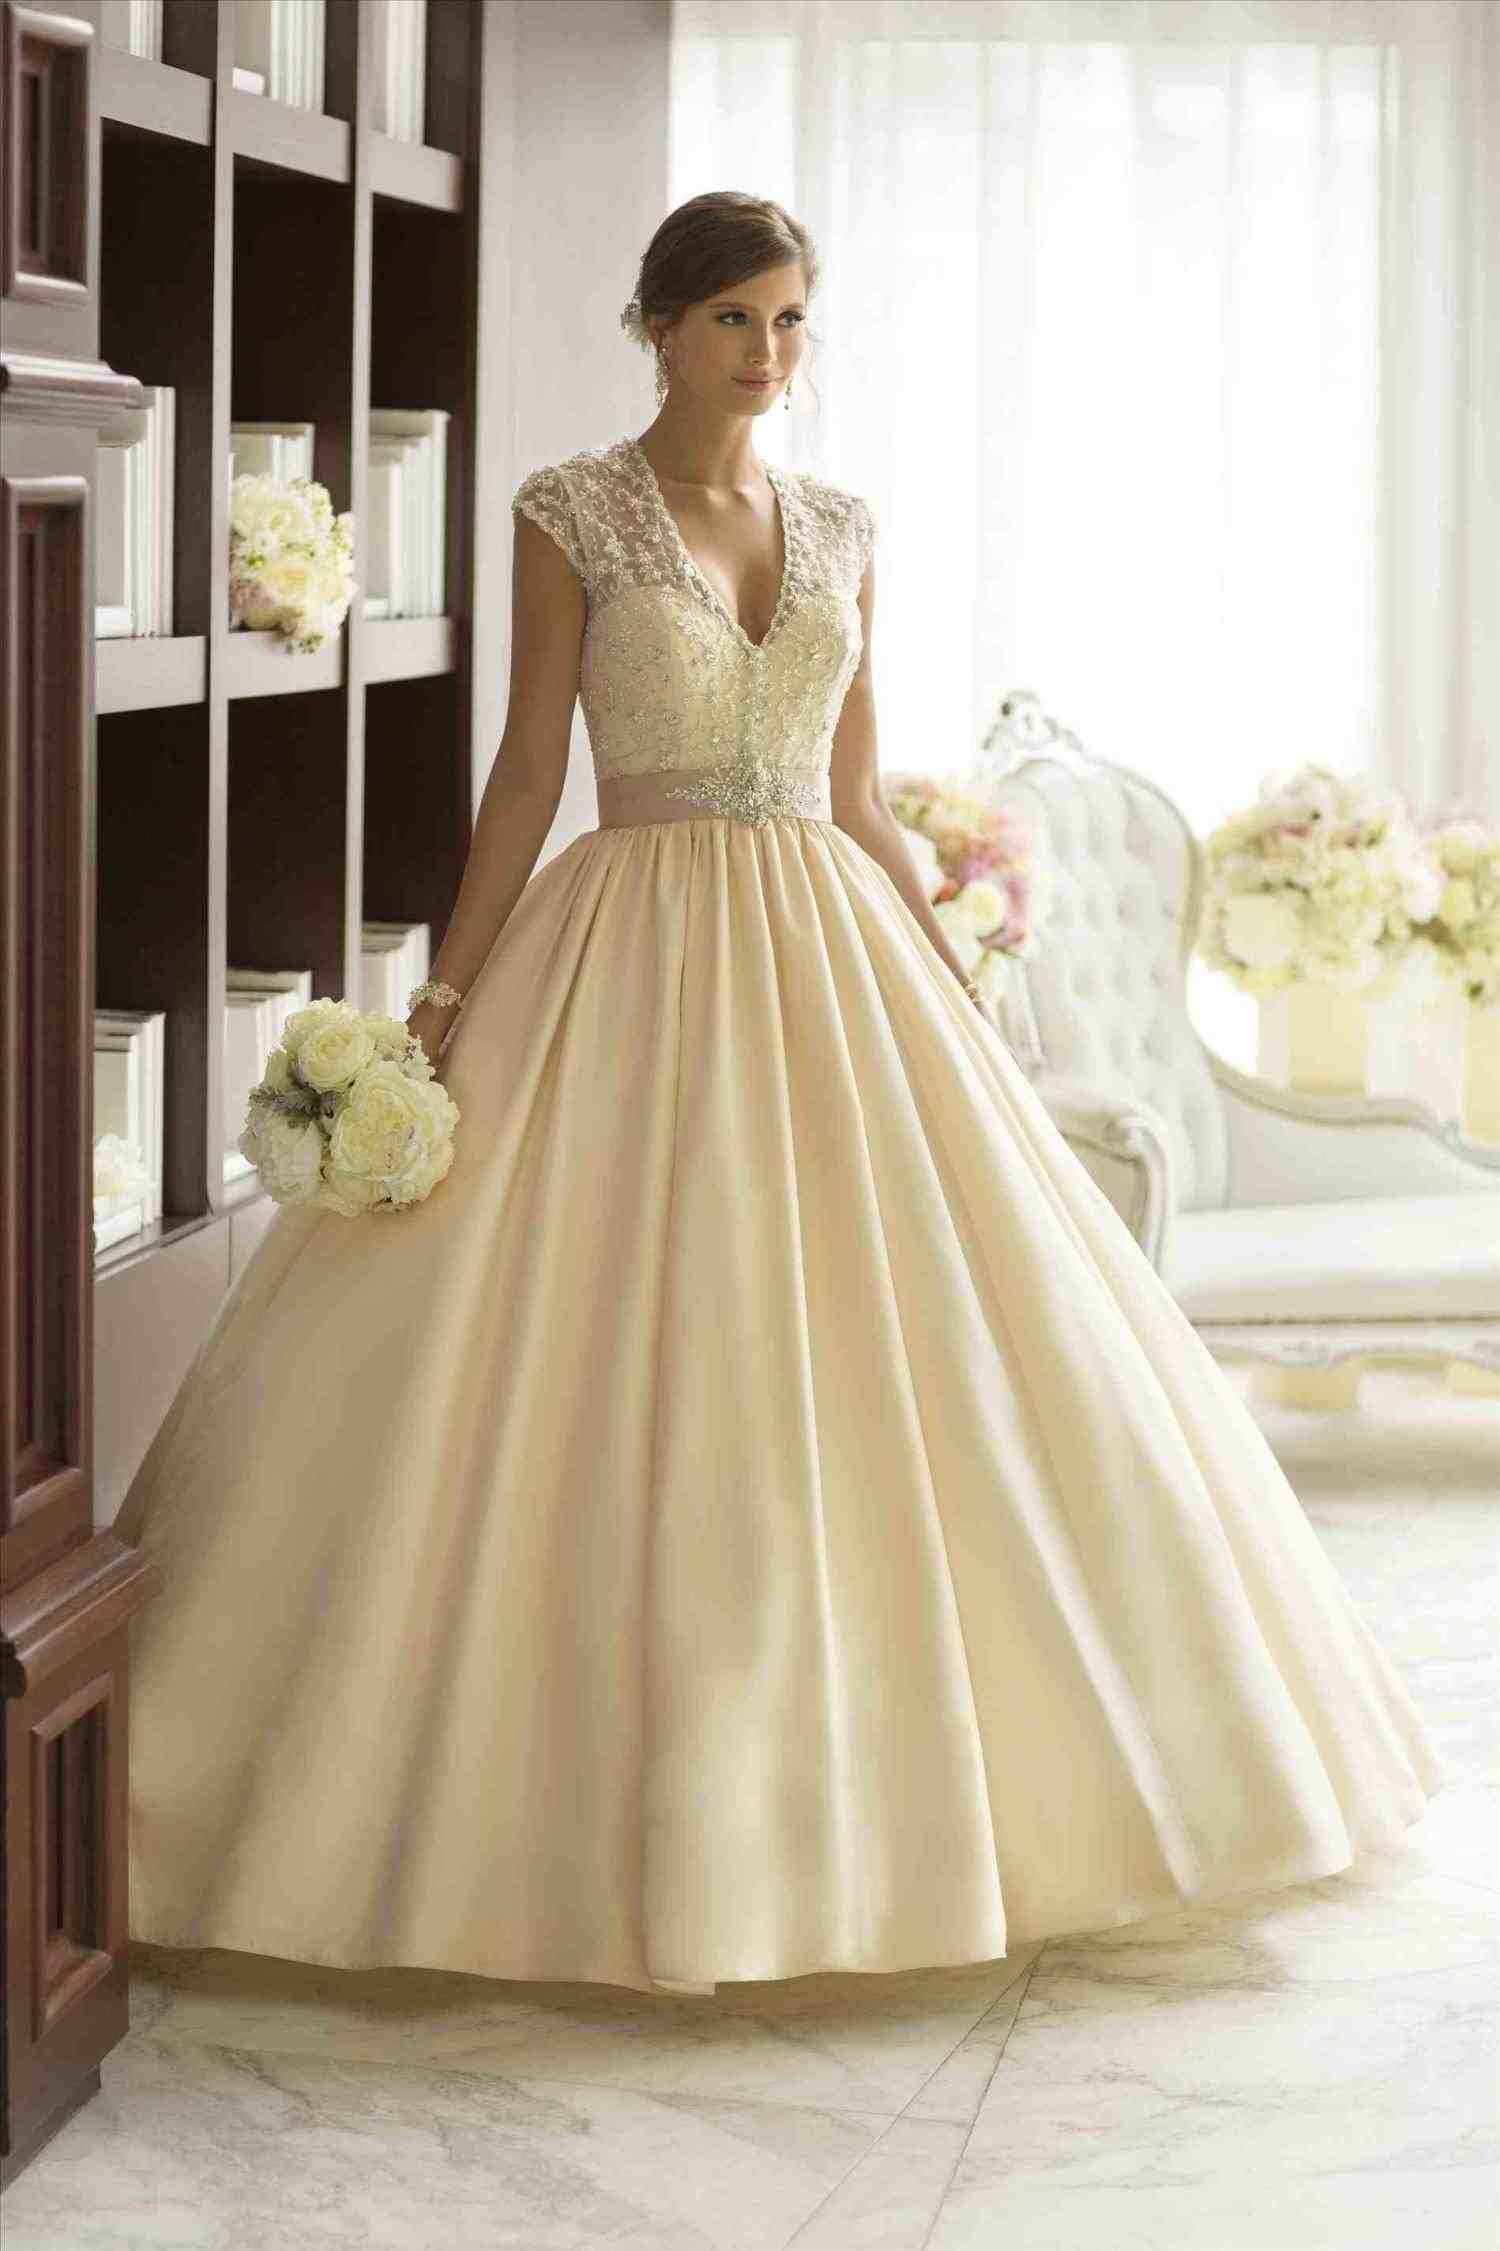 huge ball gown wedding dresses with crystals | Pinterest | Ball ...